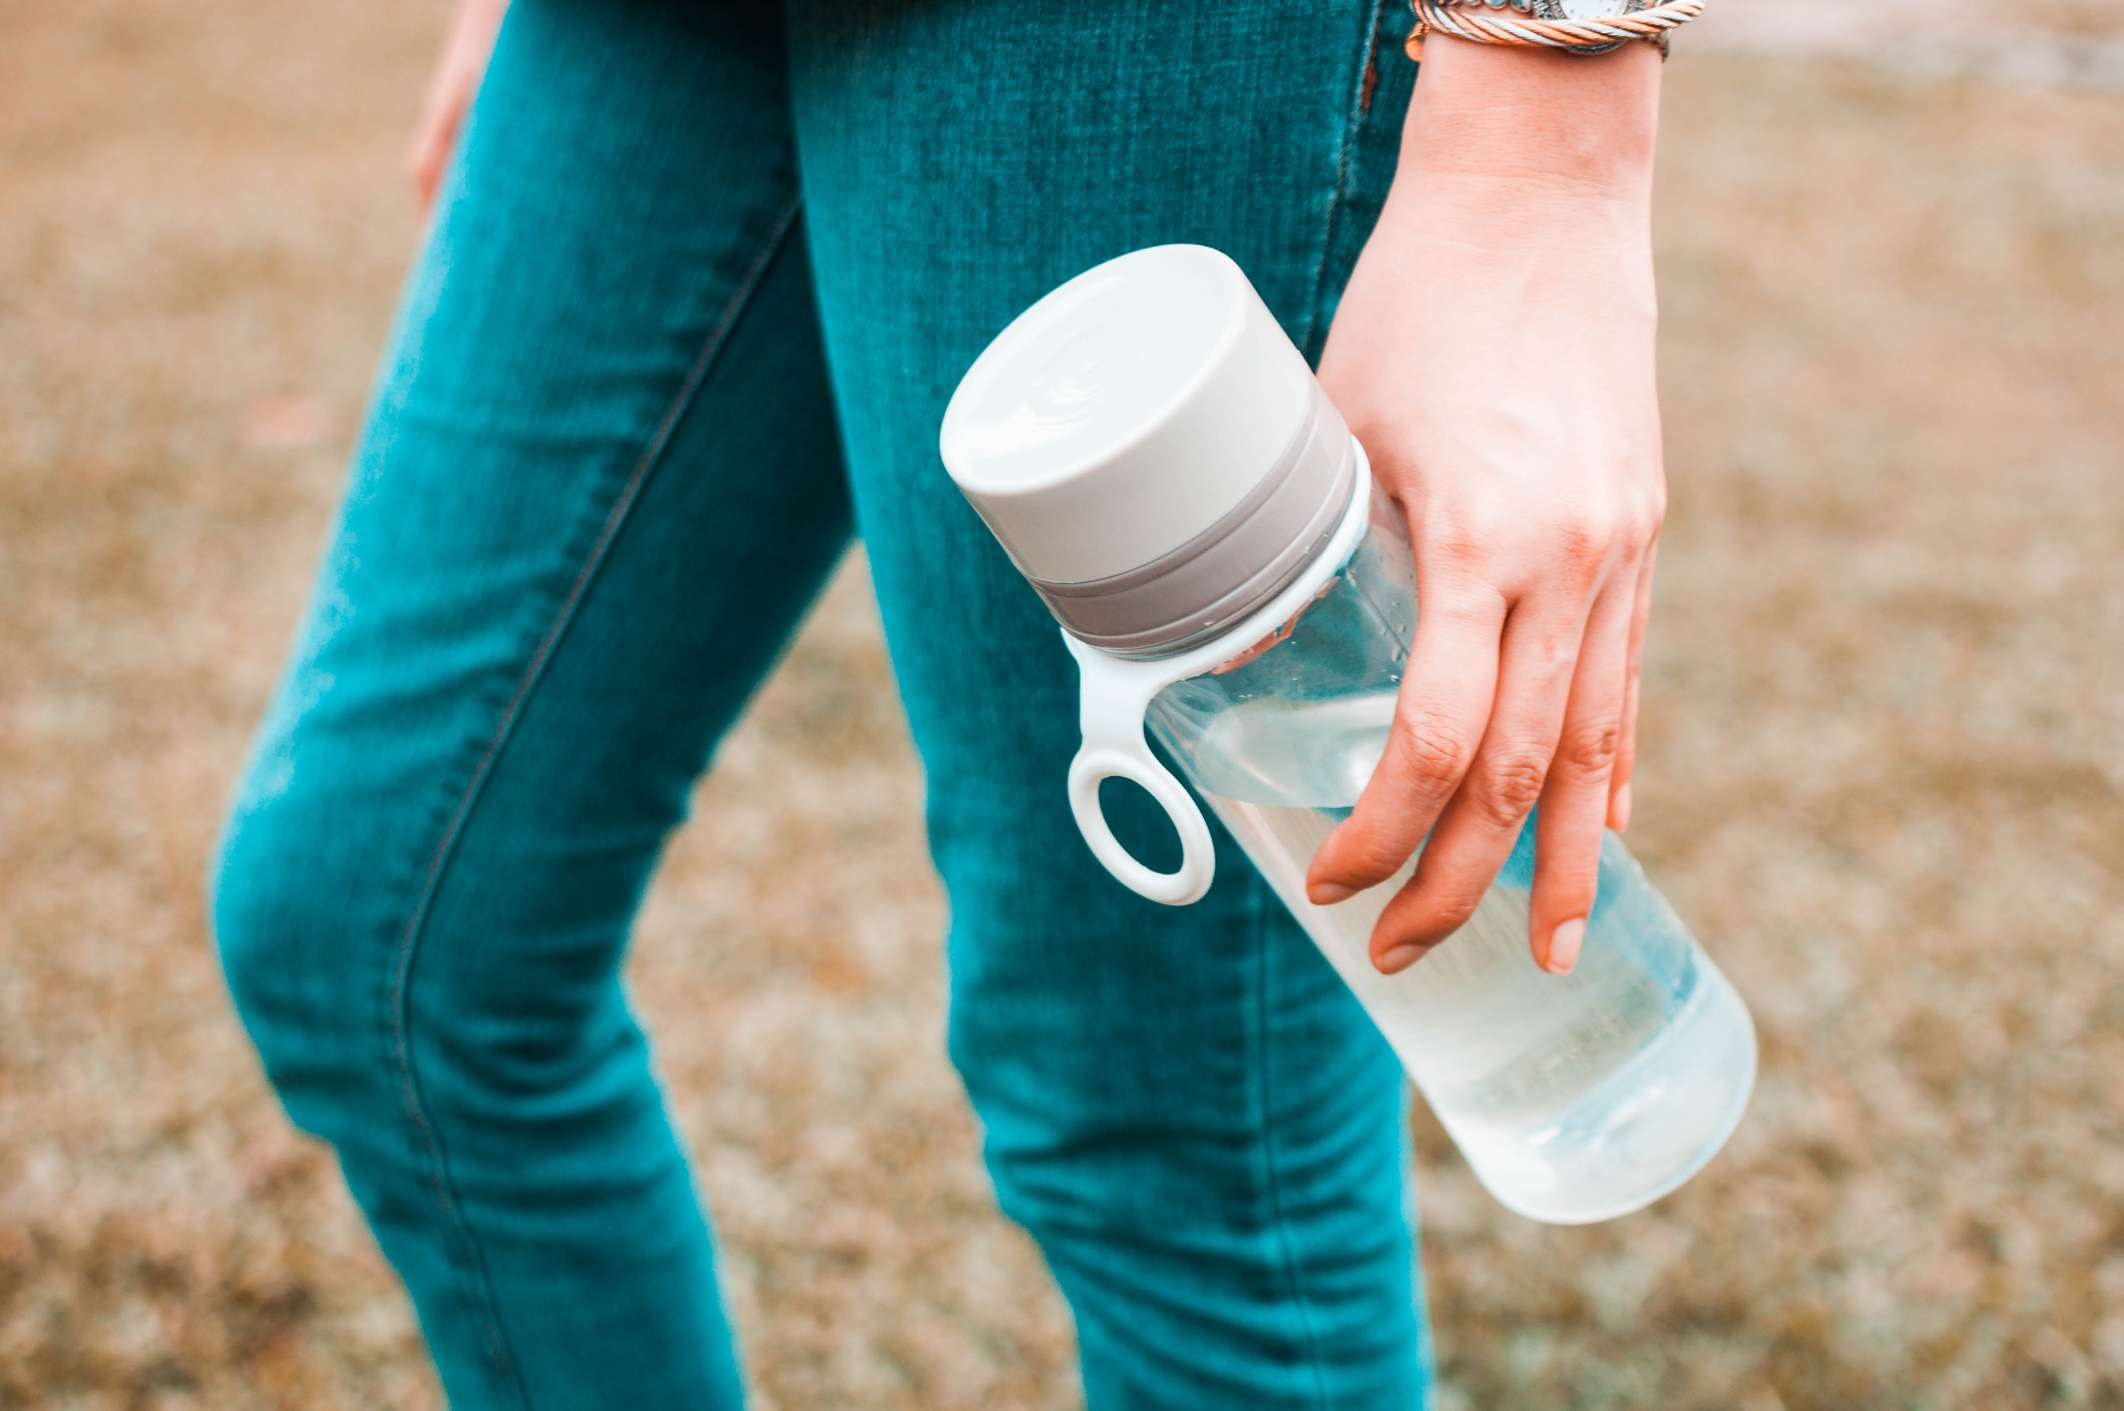 A woman holding a glass water bottle outside.